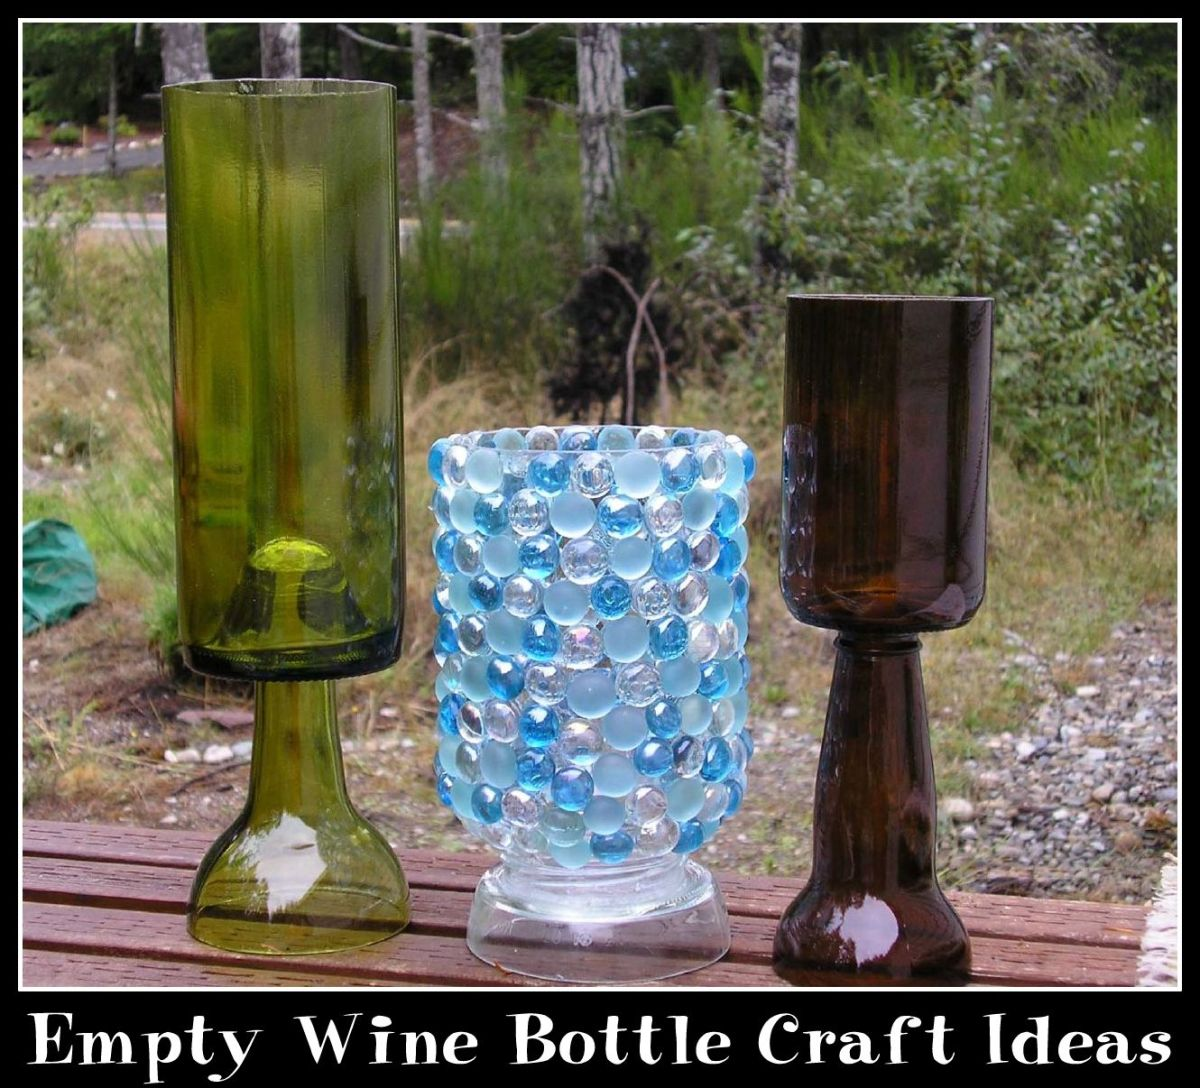 Empty wine bottle craft ideas hubpages for How to make wine bottle crafts